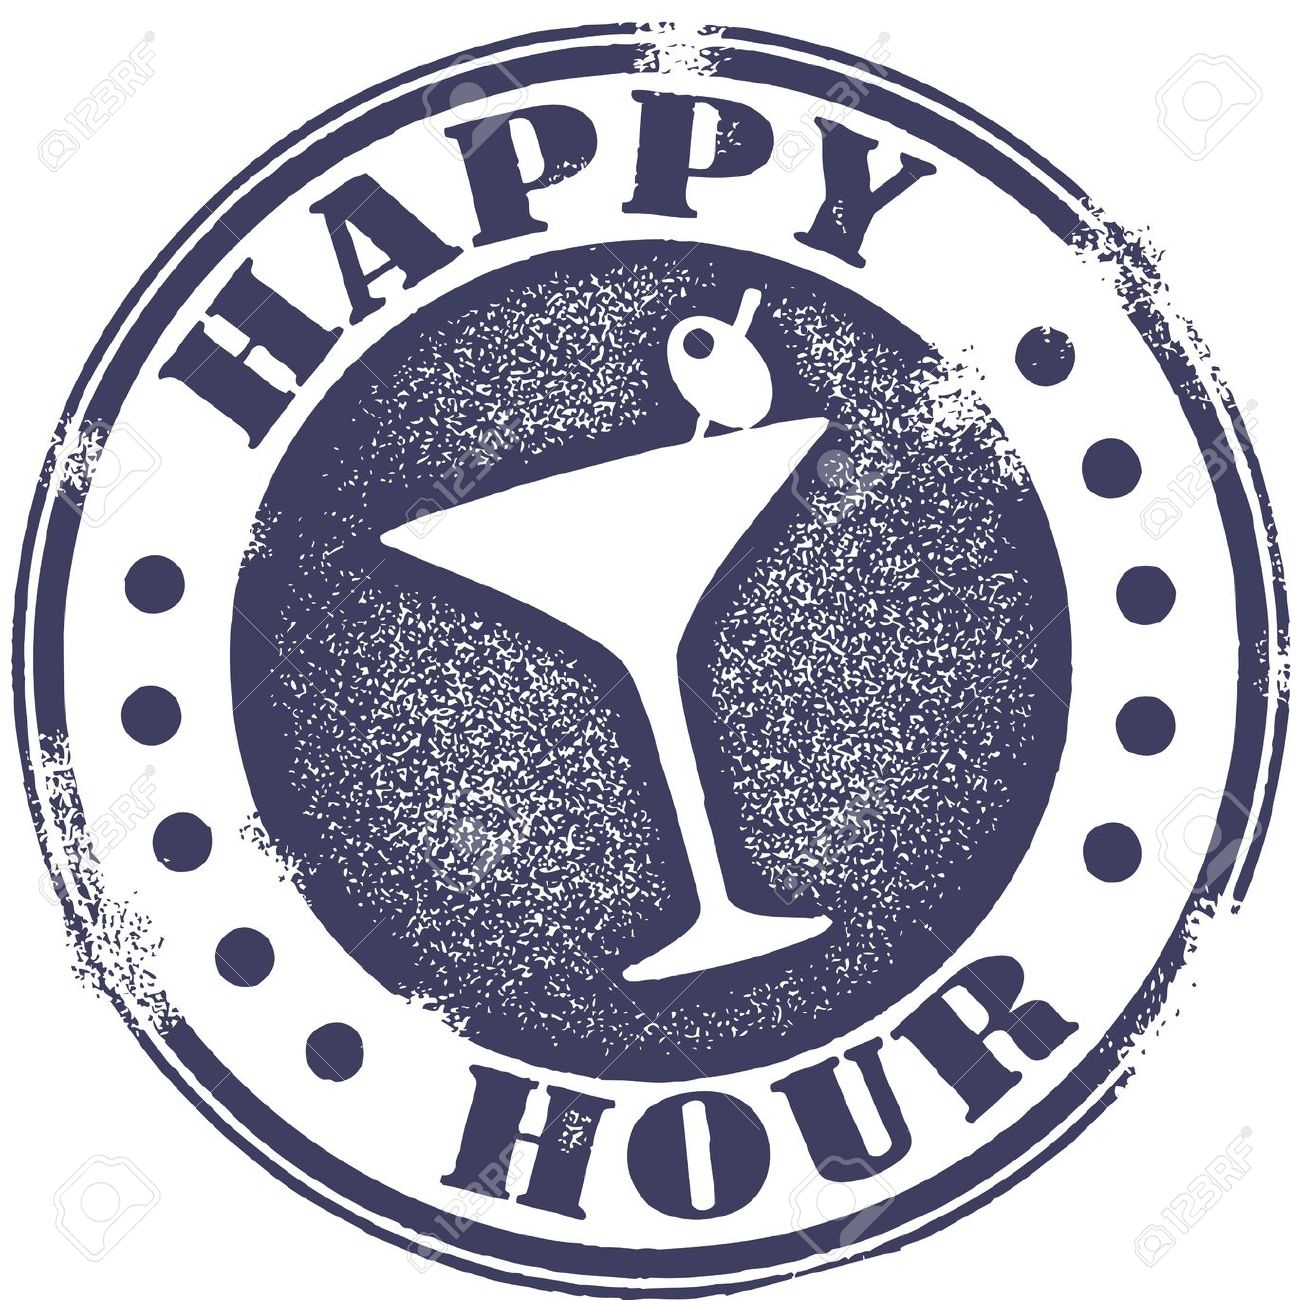 Drink clipart happy hour Alumnae Happy hour happy Association